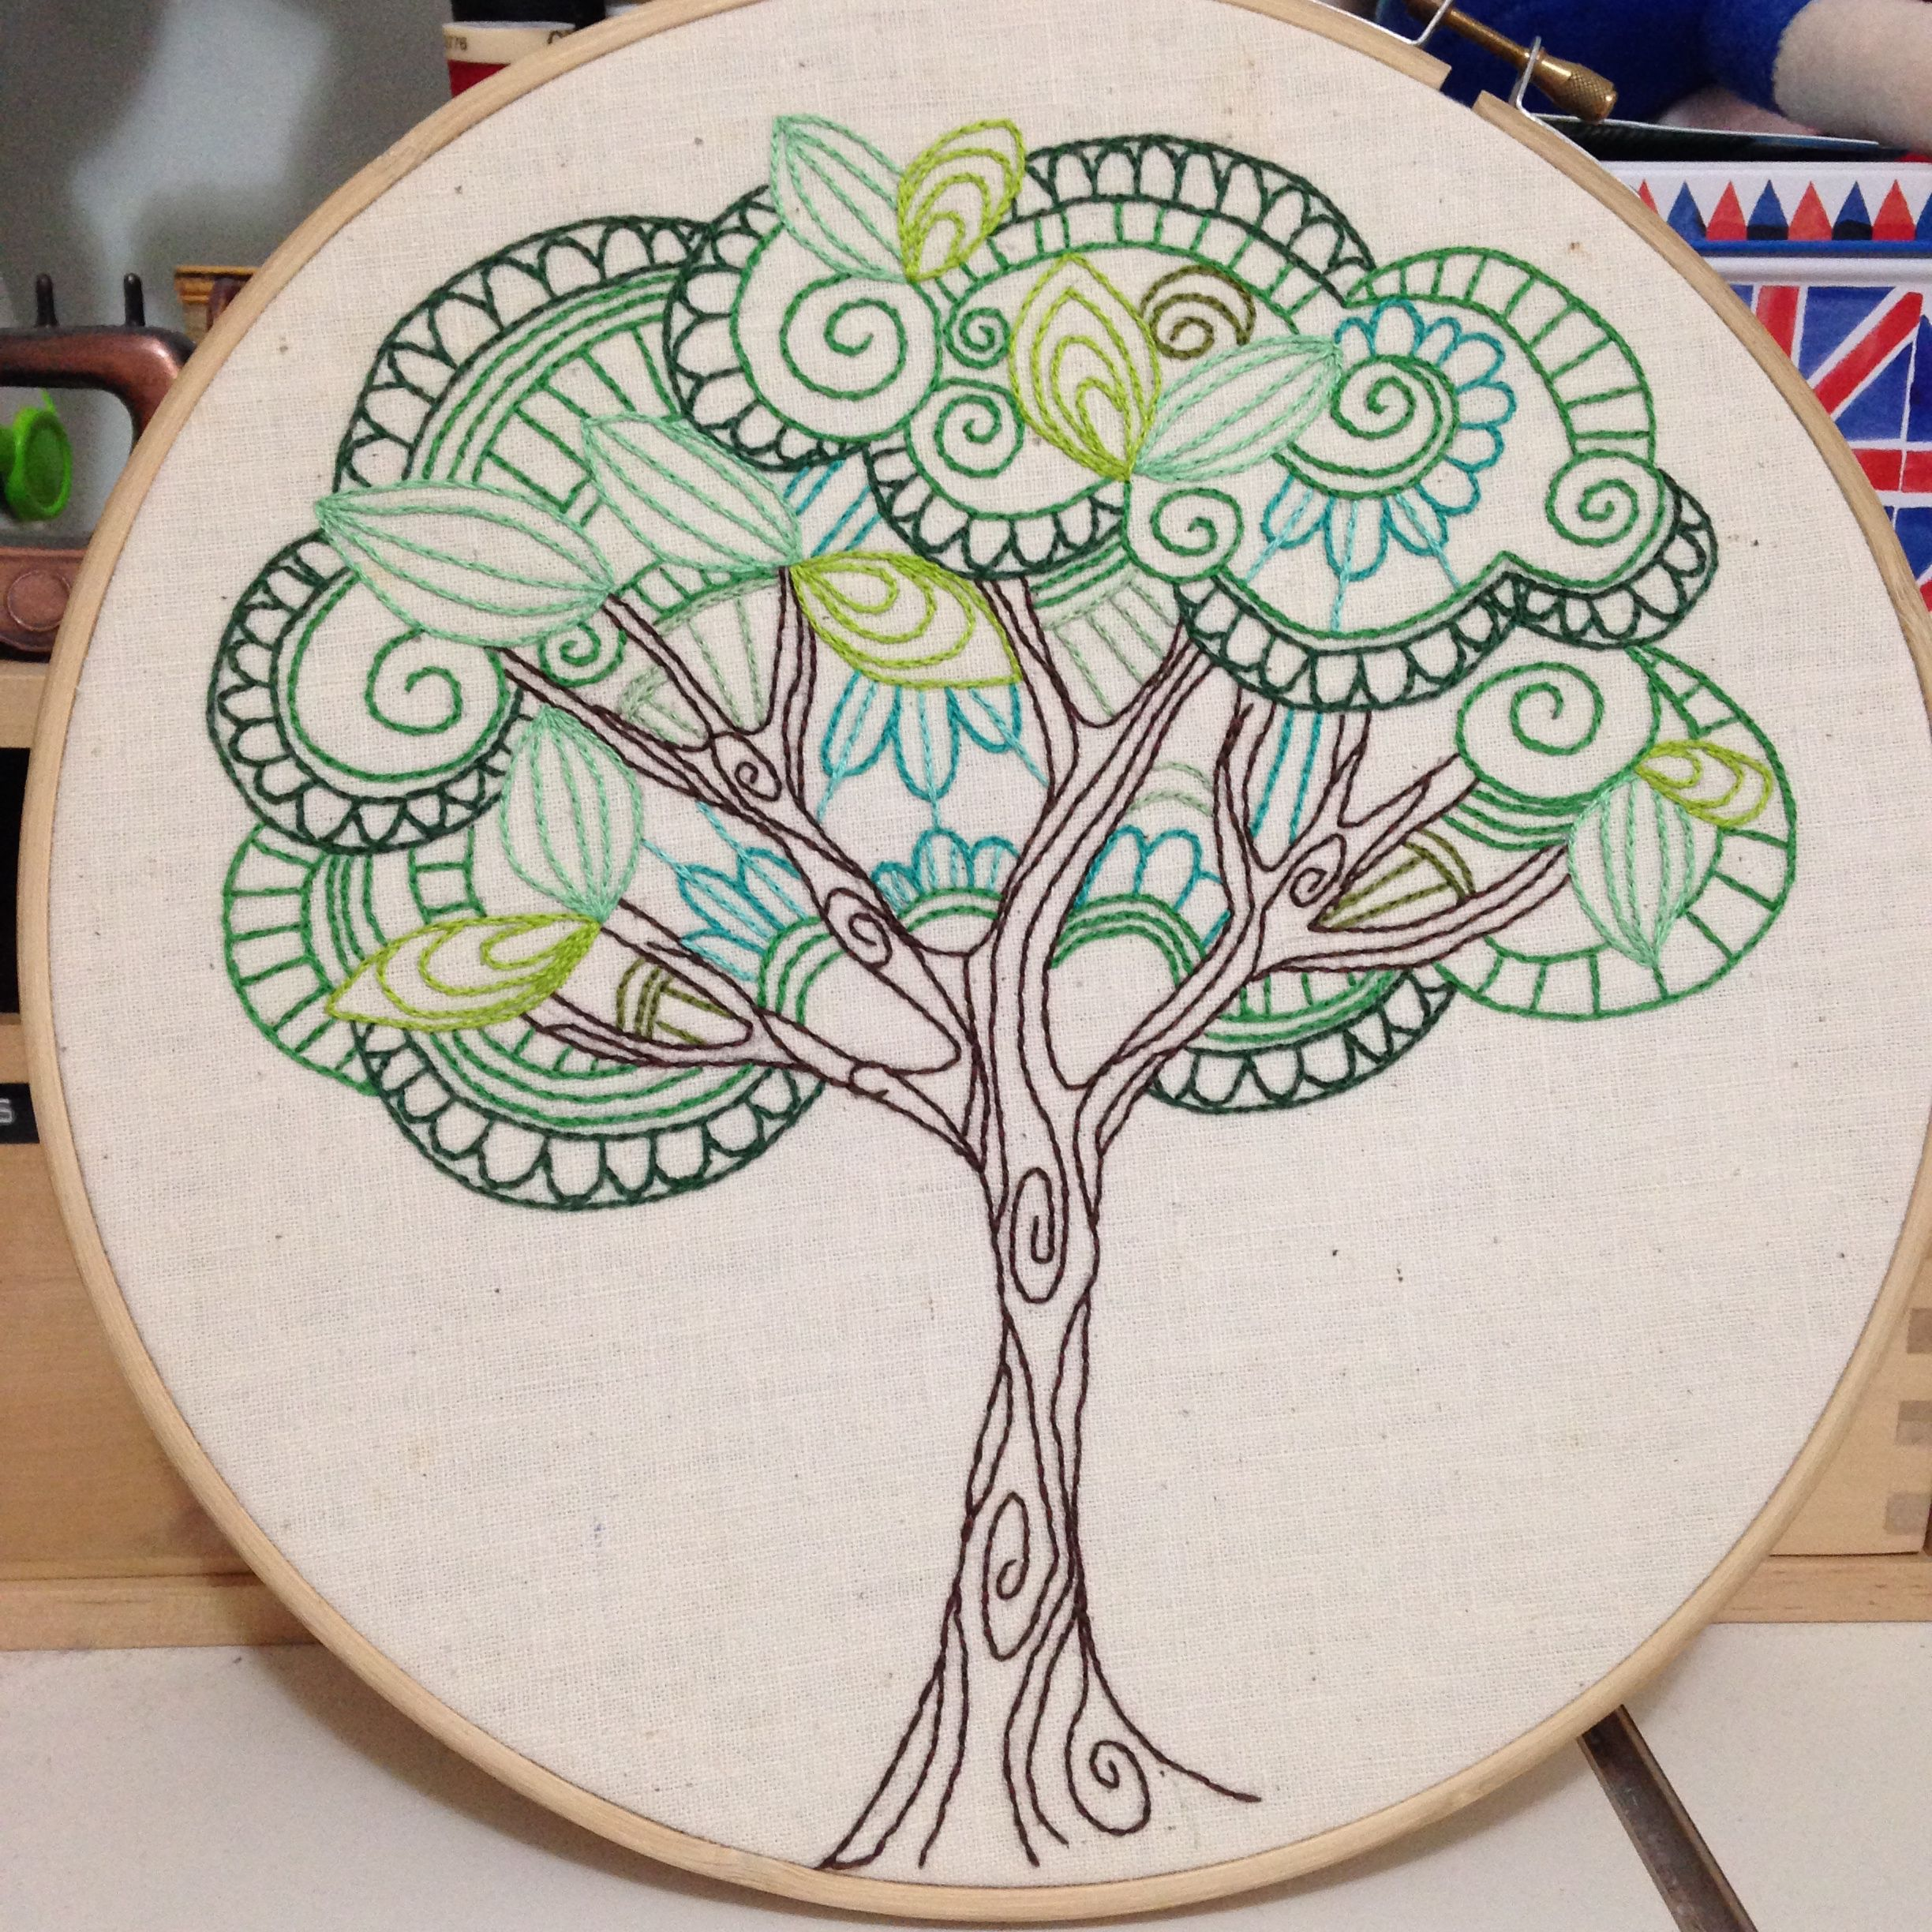 Tree Of Life From 3and3 Quarters Blog-amazing Needlework! | Needlework | Pinterest | Needlework ...